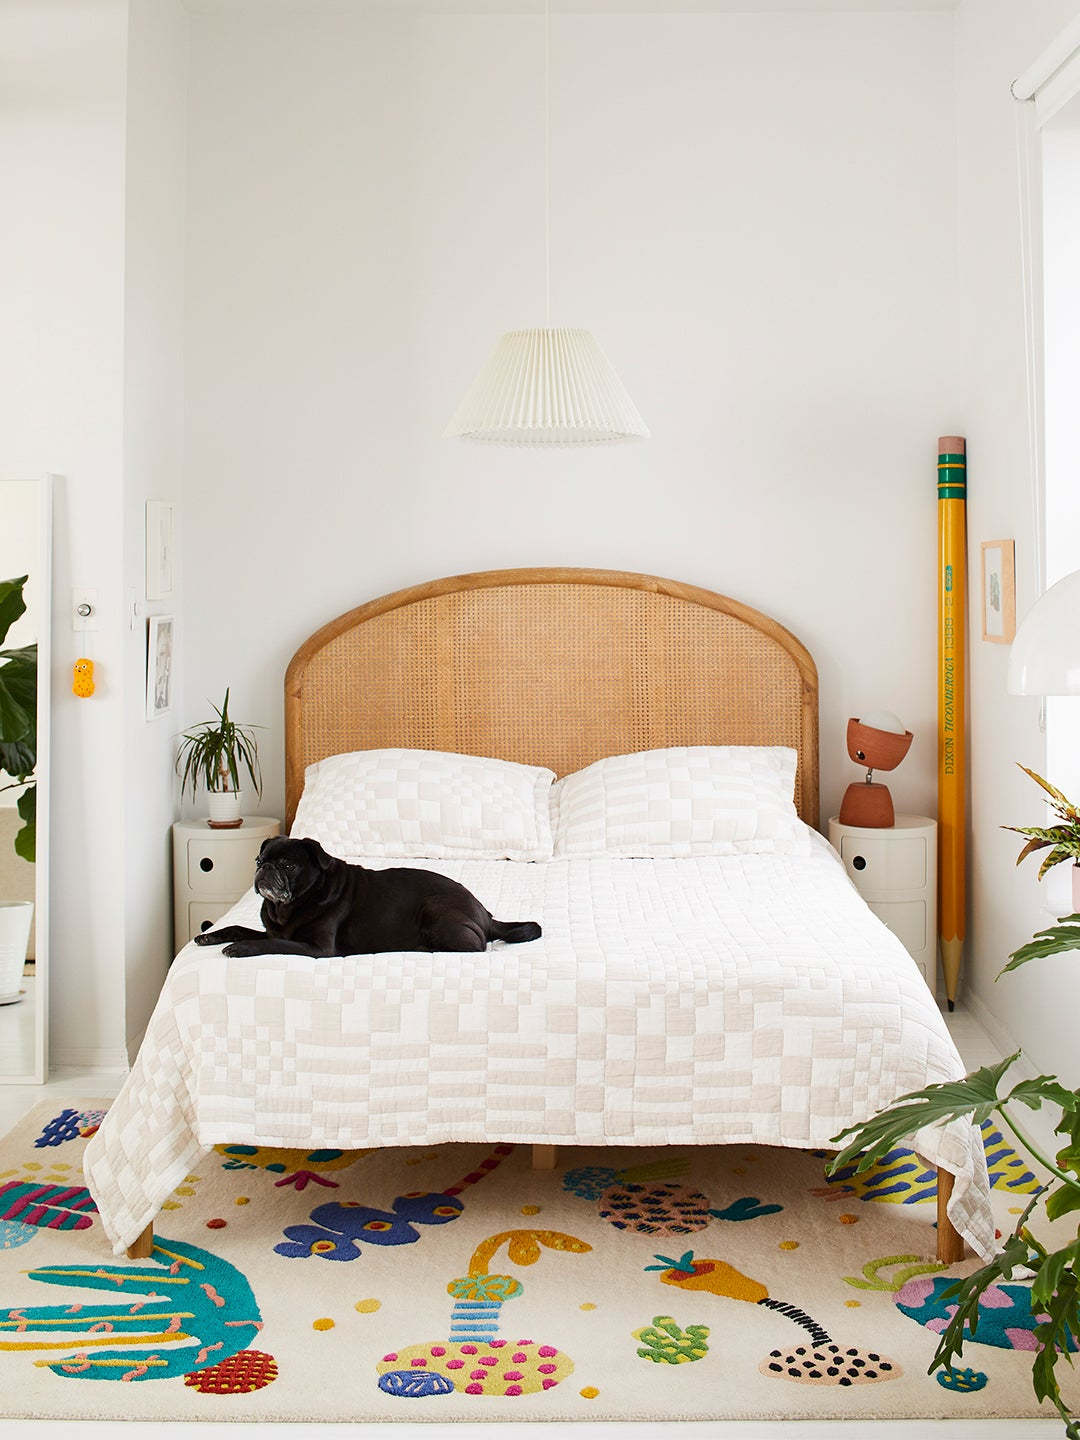 Bed with cane headboard and white bedding